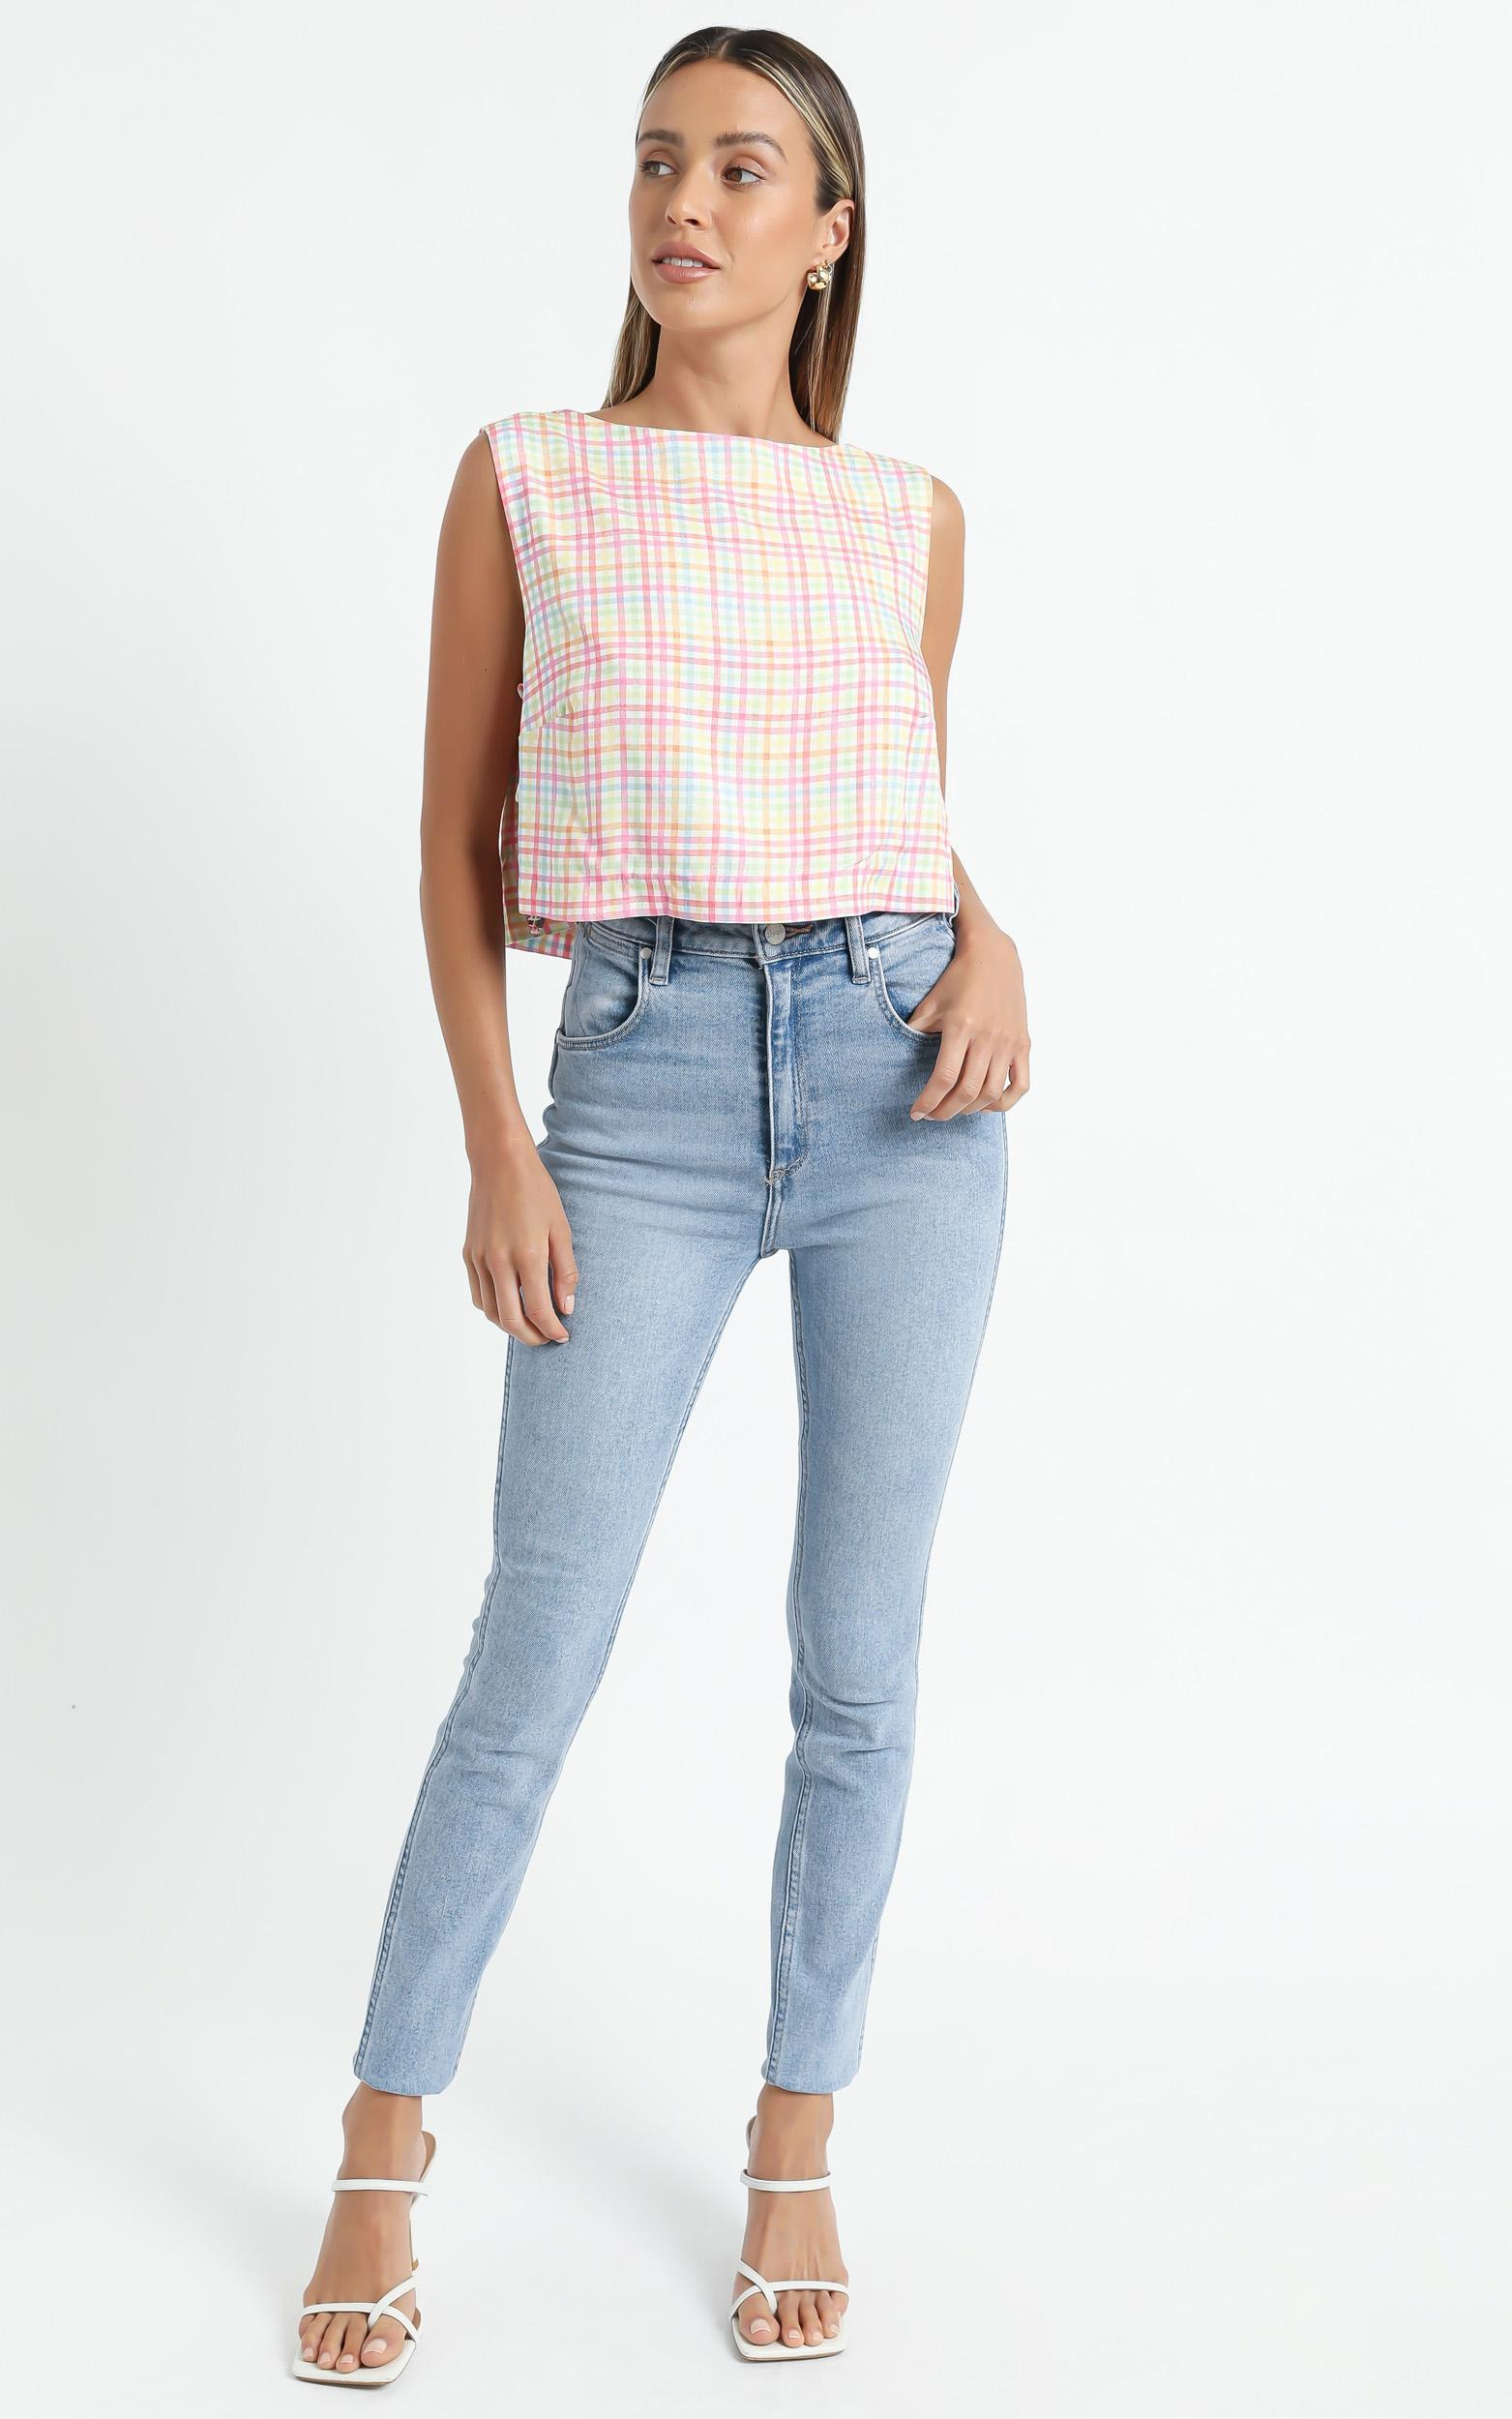 Mavra Top in Rainbow Check - 6 (XS), MLT2, hi-res image number null